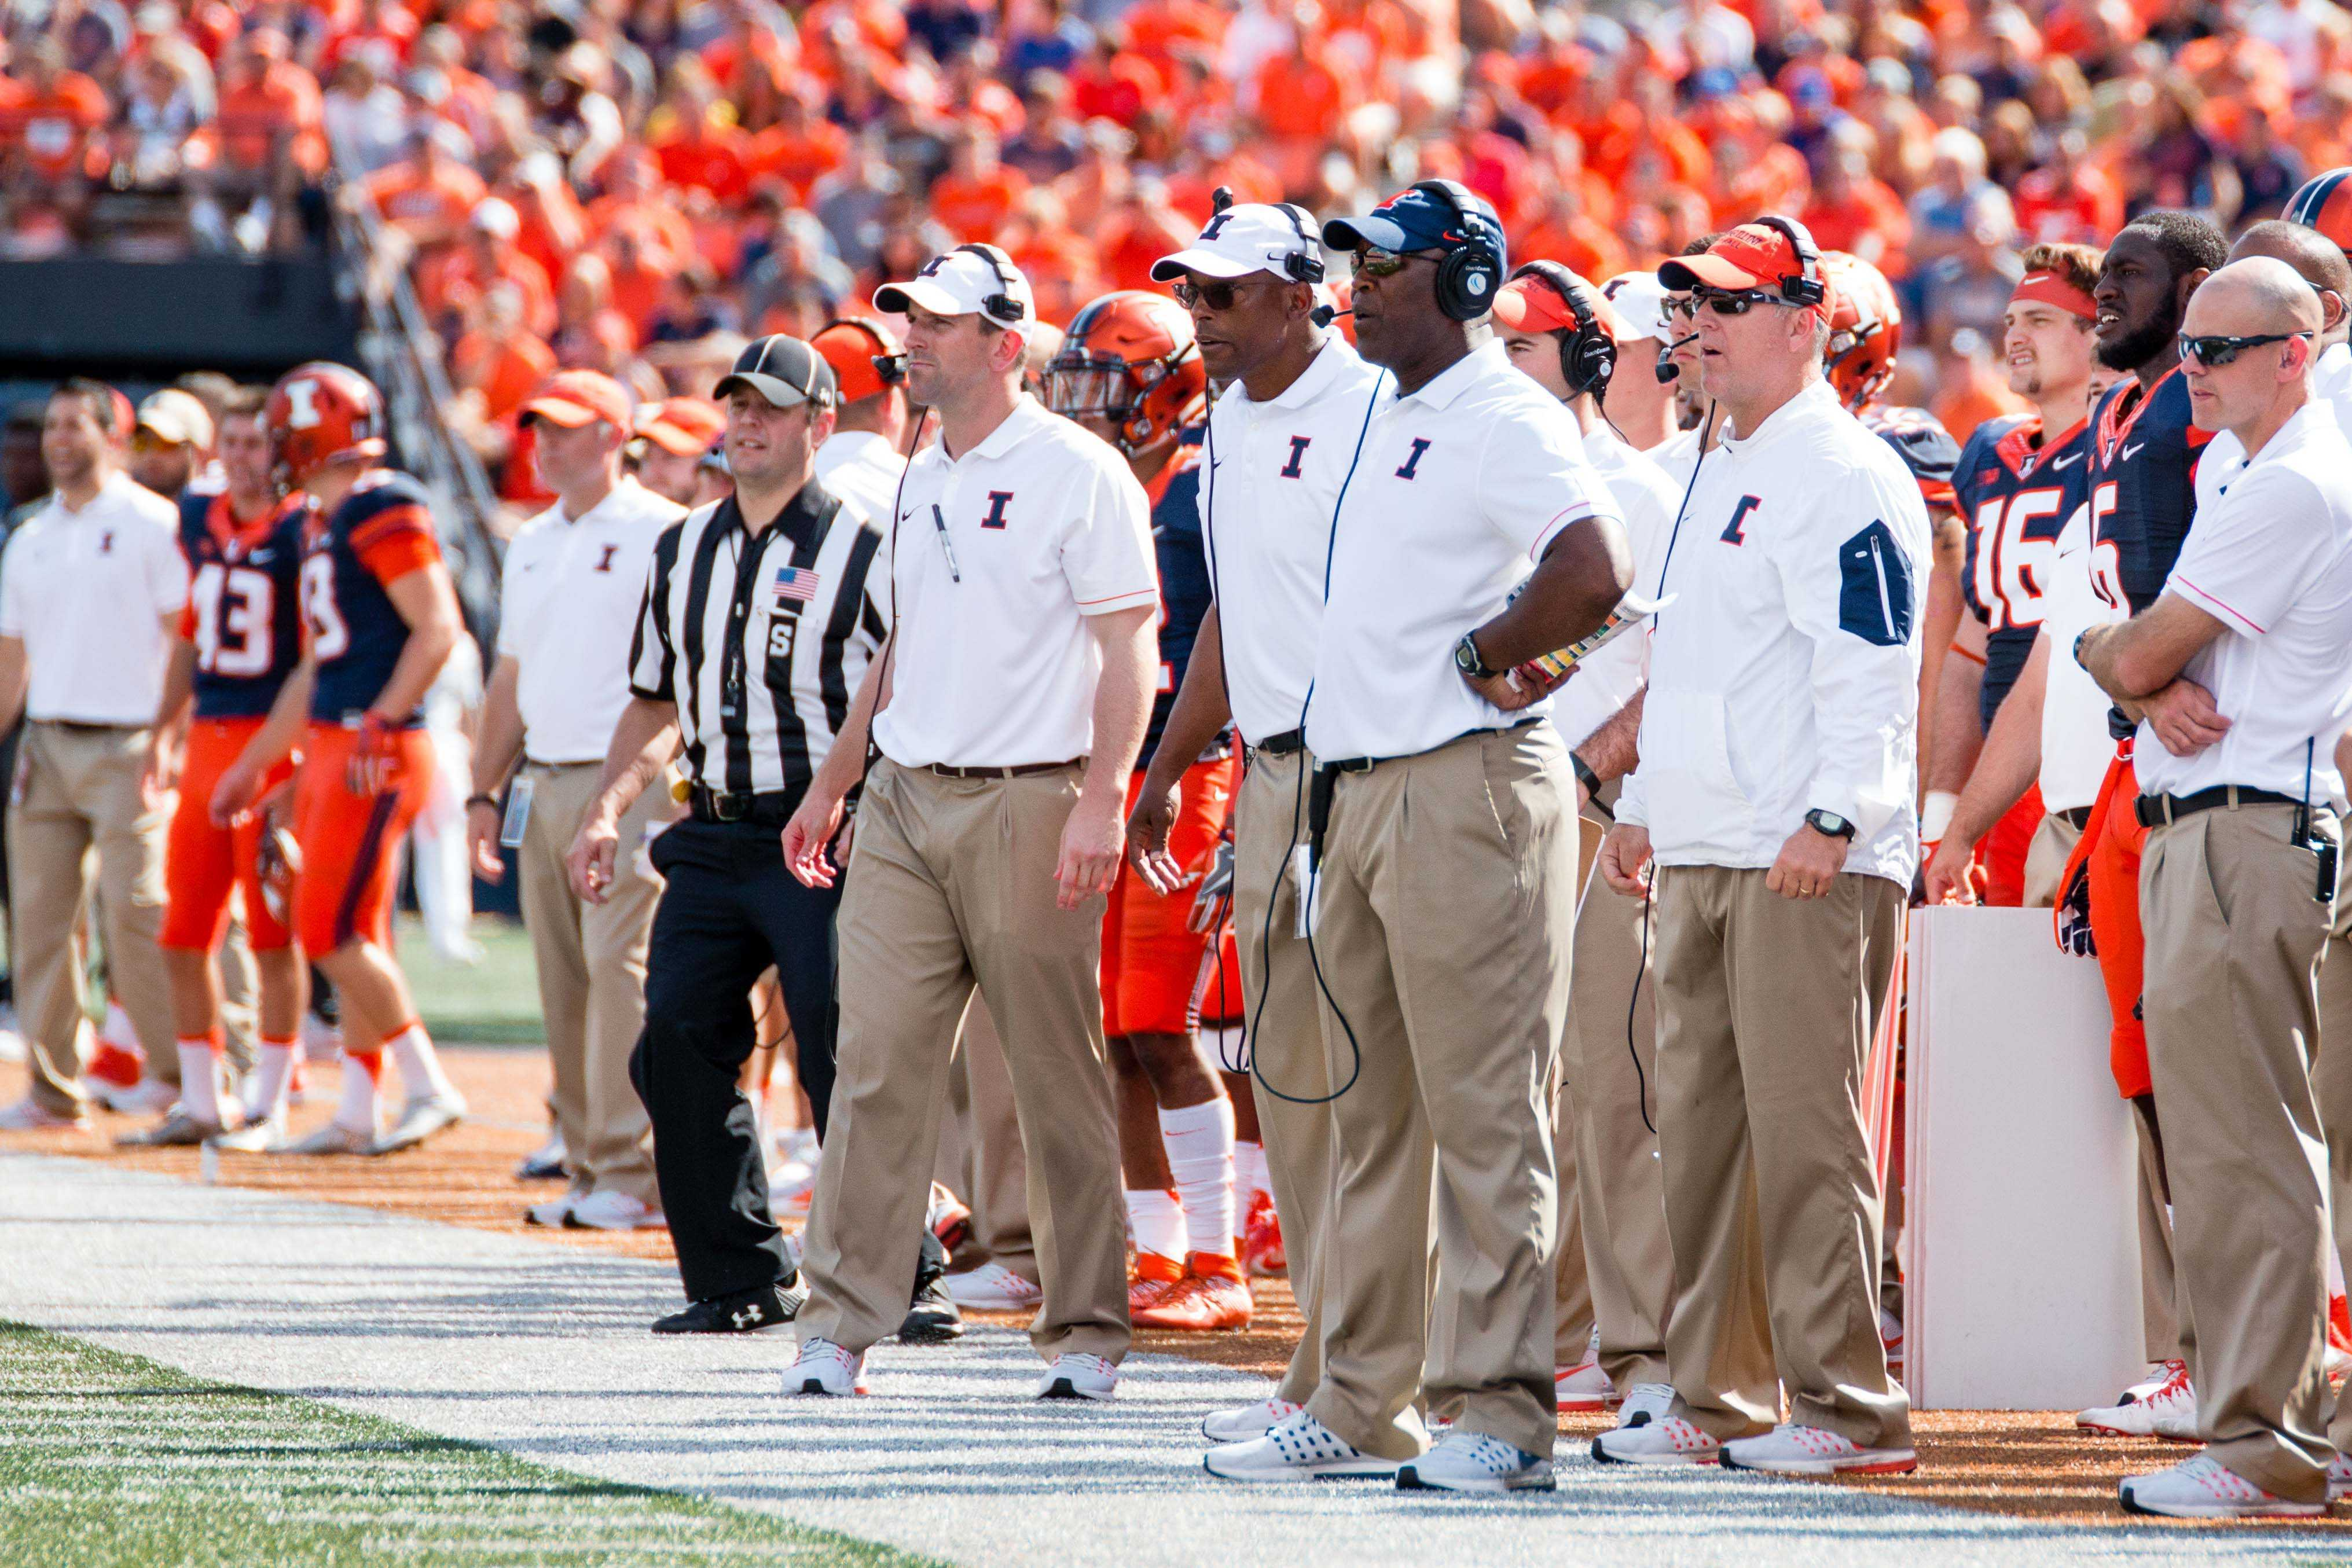 Illinois head coach Lovie Smith watches his team from the sidelines during the game against Murray State at Memorial Stadium on Sept. 3. The Illini's 12th spring practice will be open to the public on Saturday.